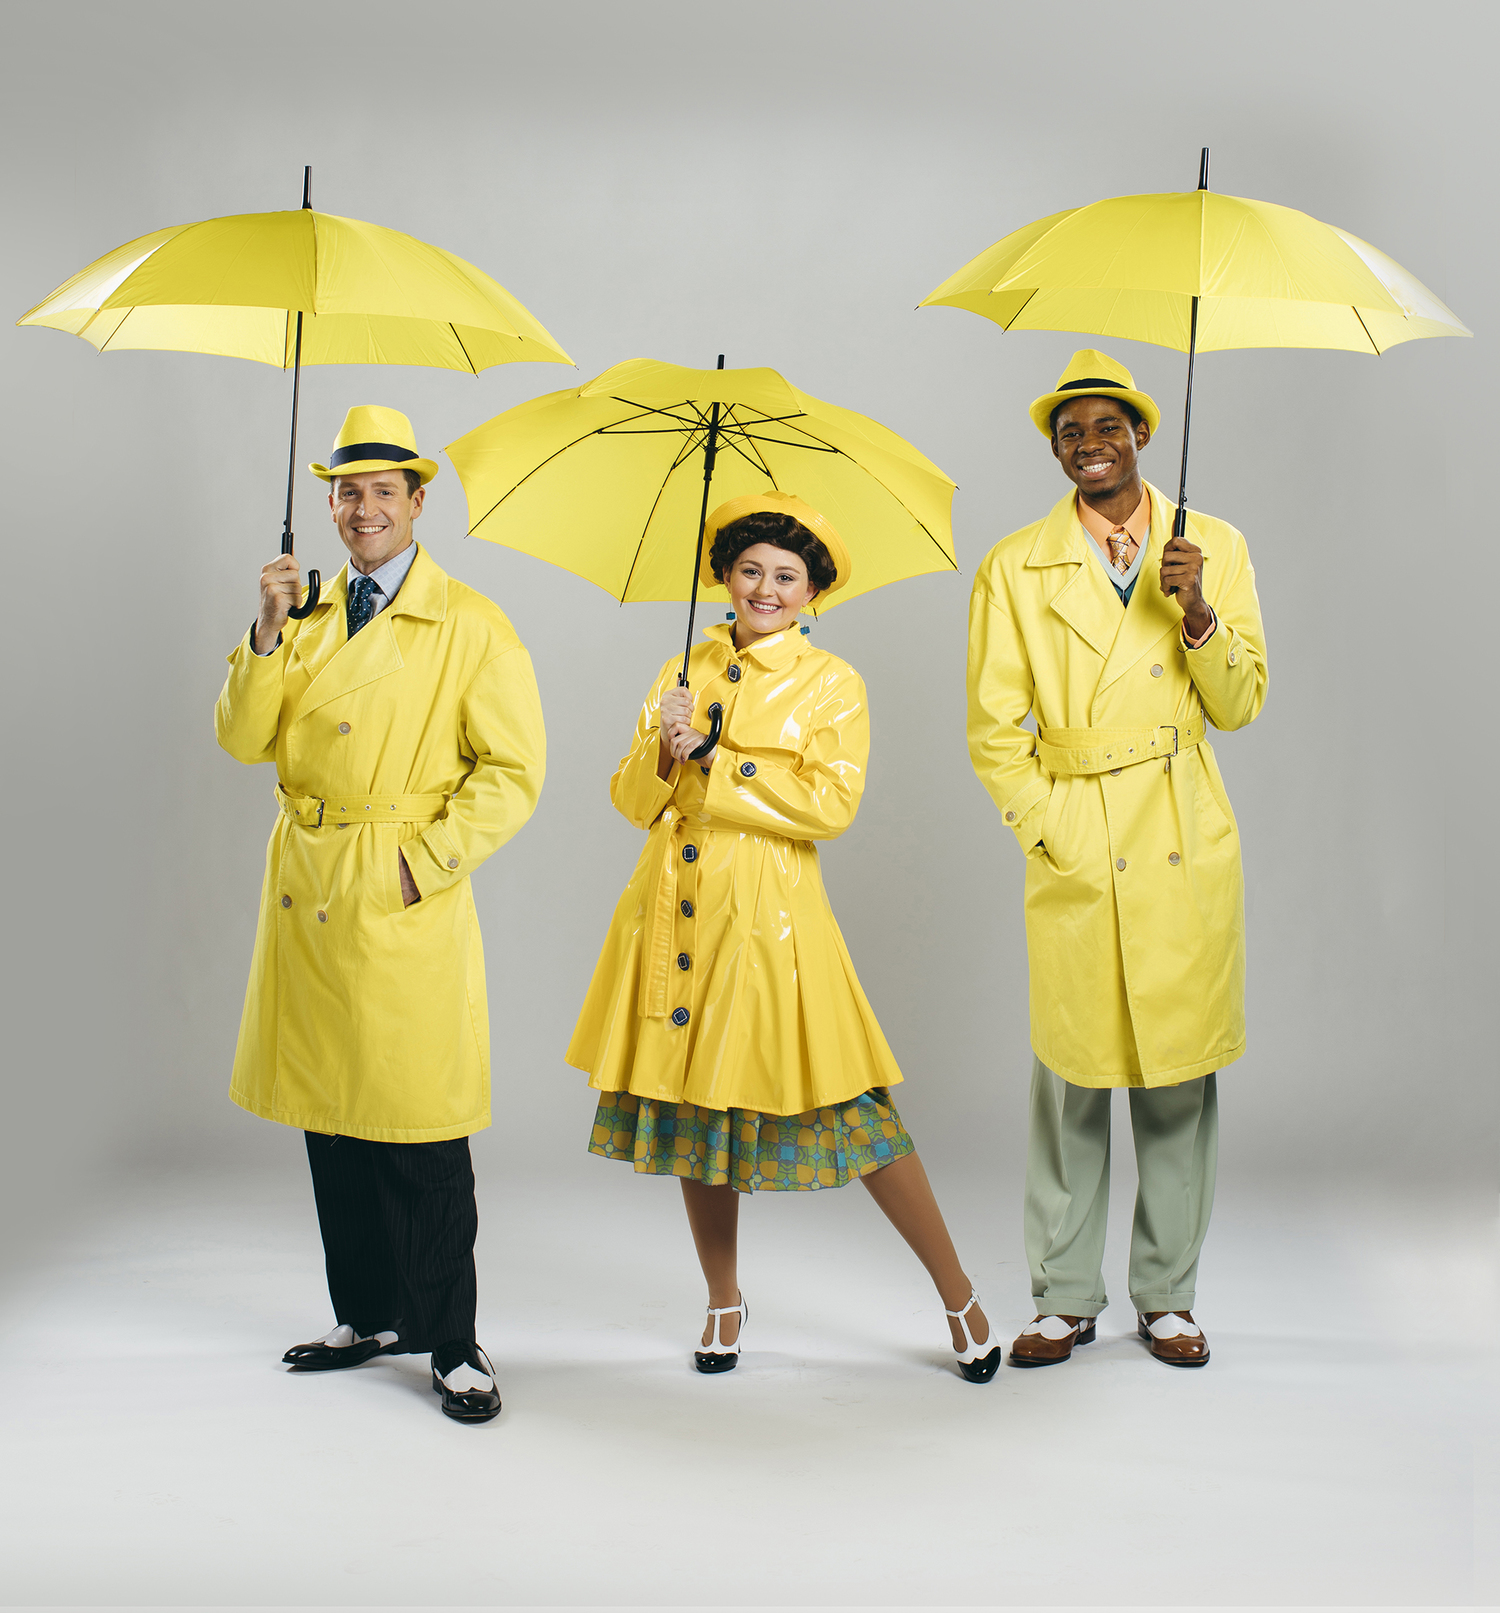 BWW Review: SINGIN' IN THE RAIN at Omaha Community Playhouse